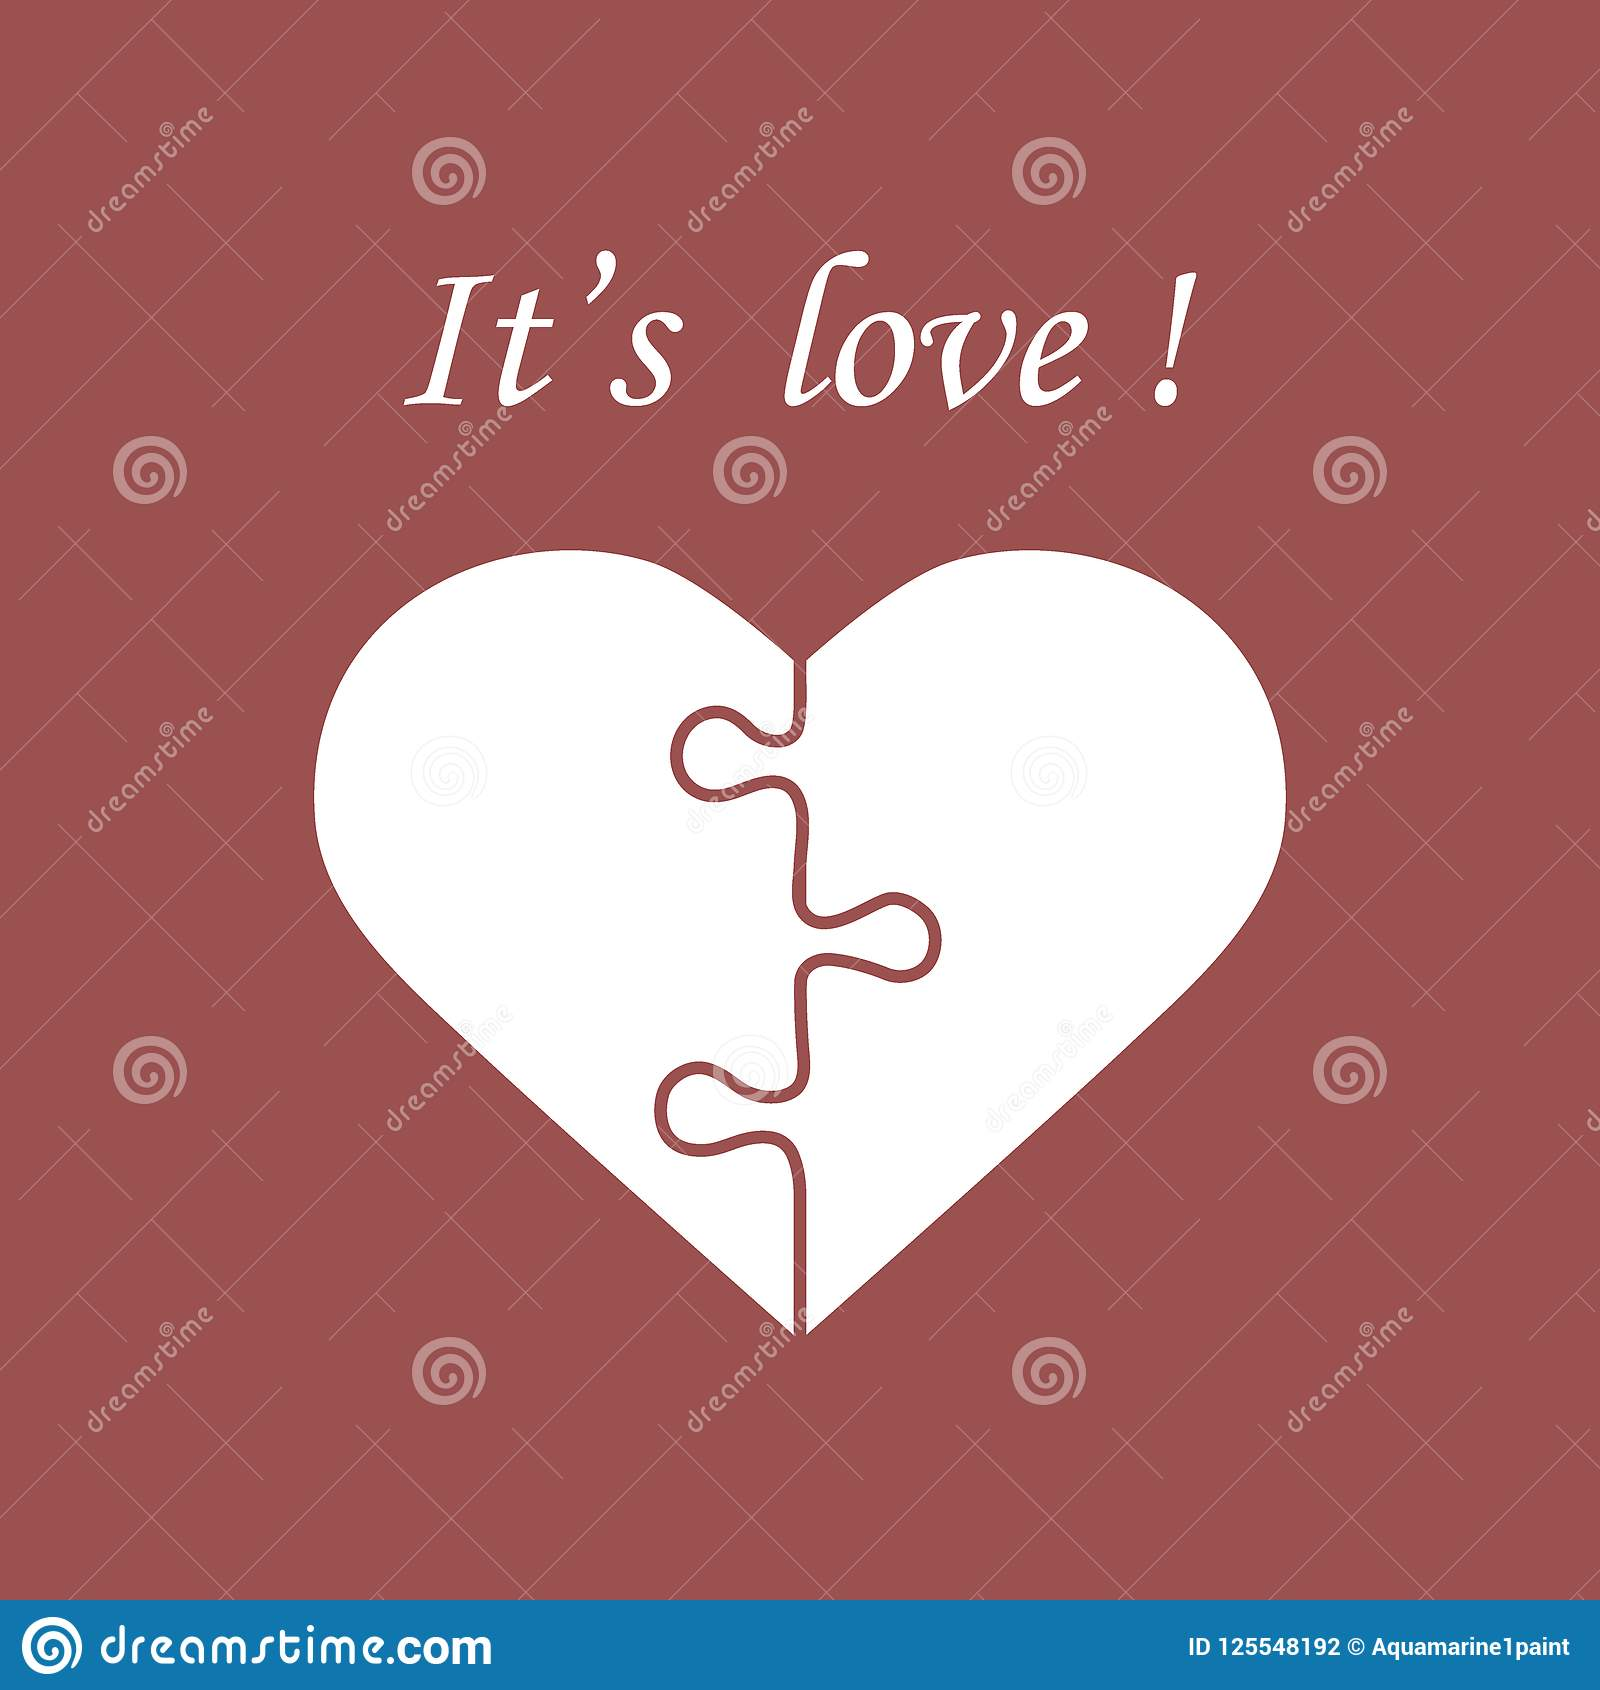 Cute Vector Illustration With Heart In The Form Of A Puzzle And